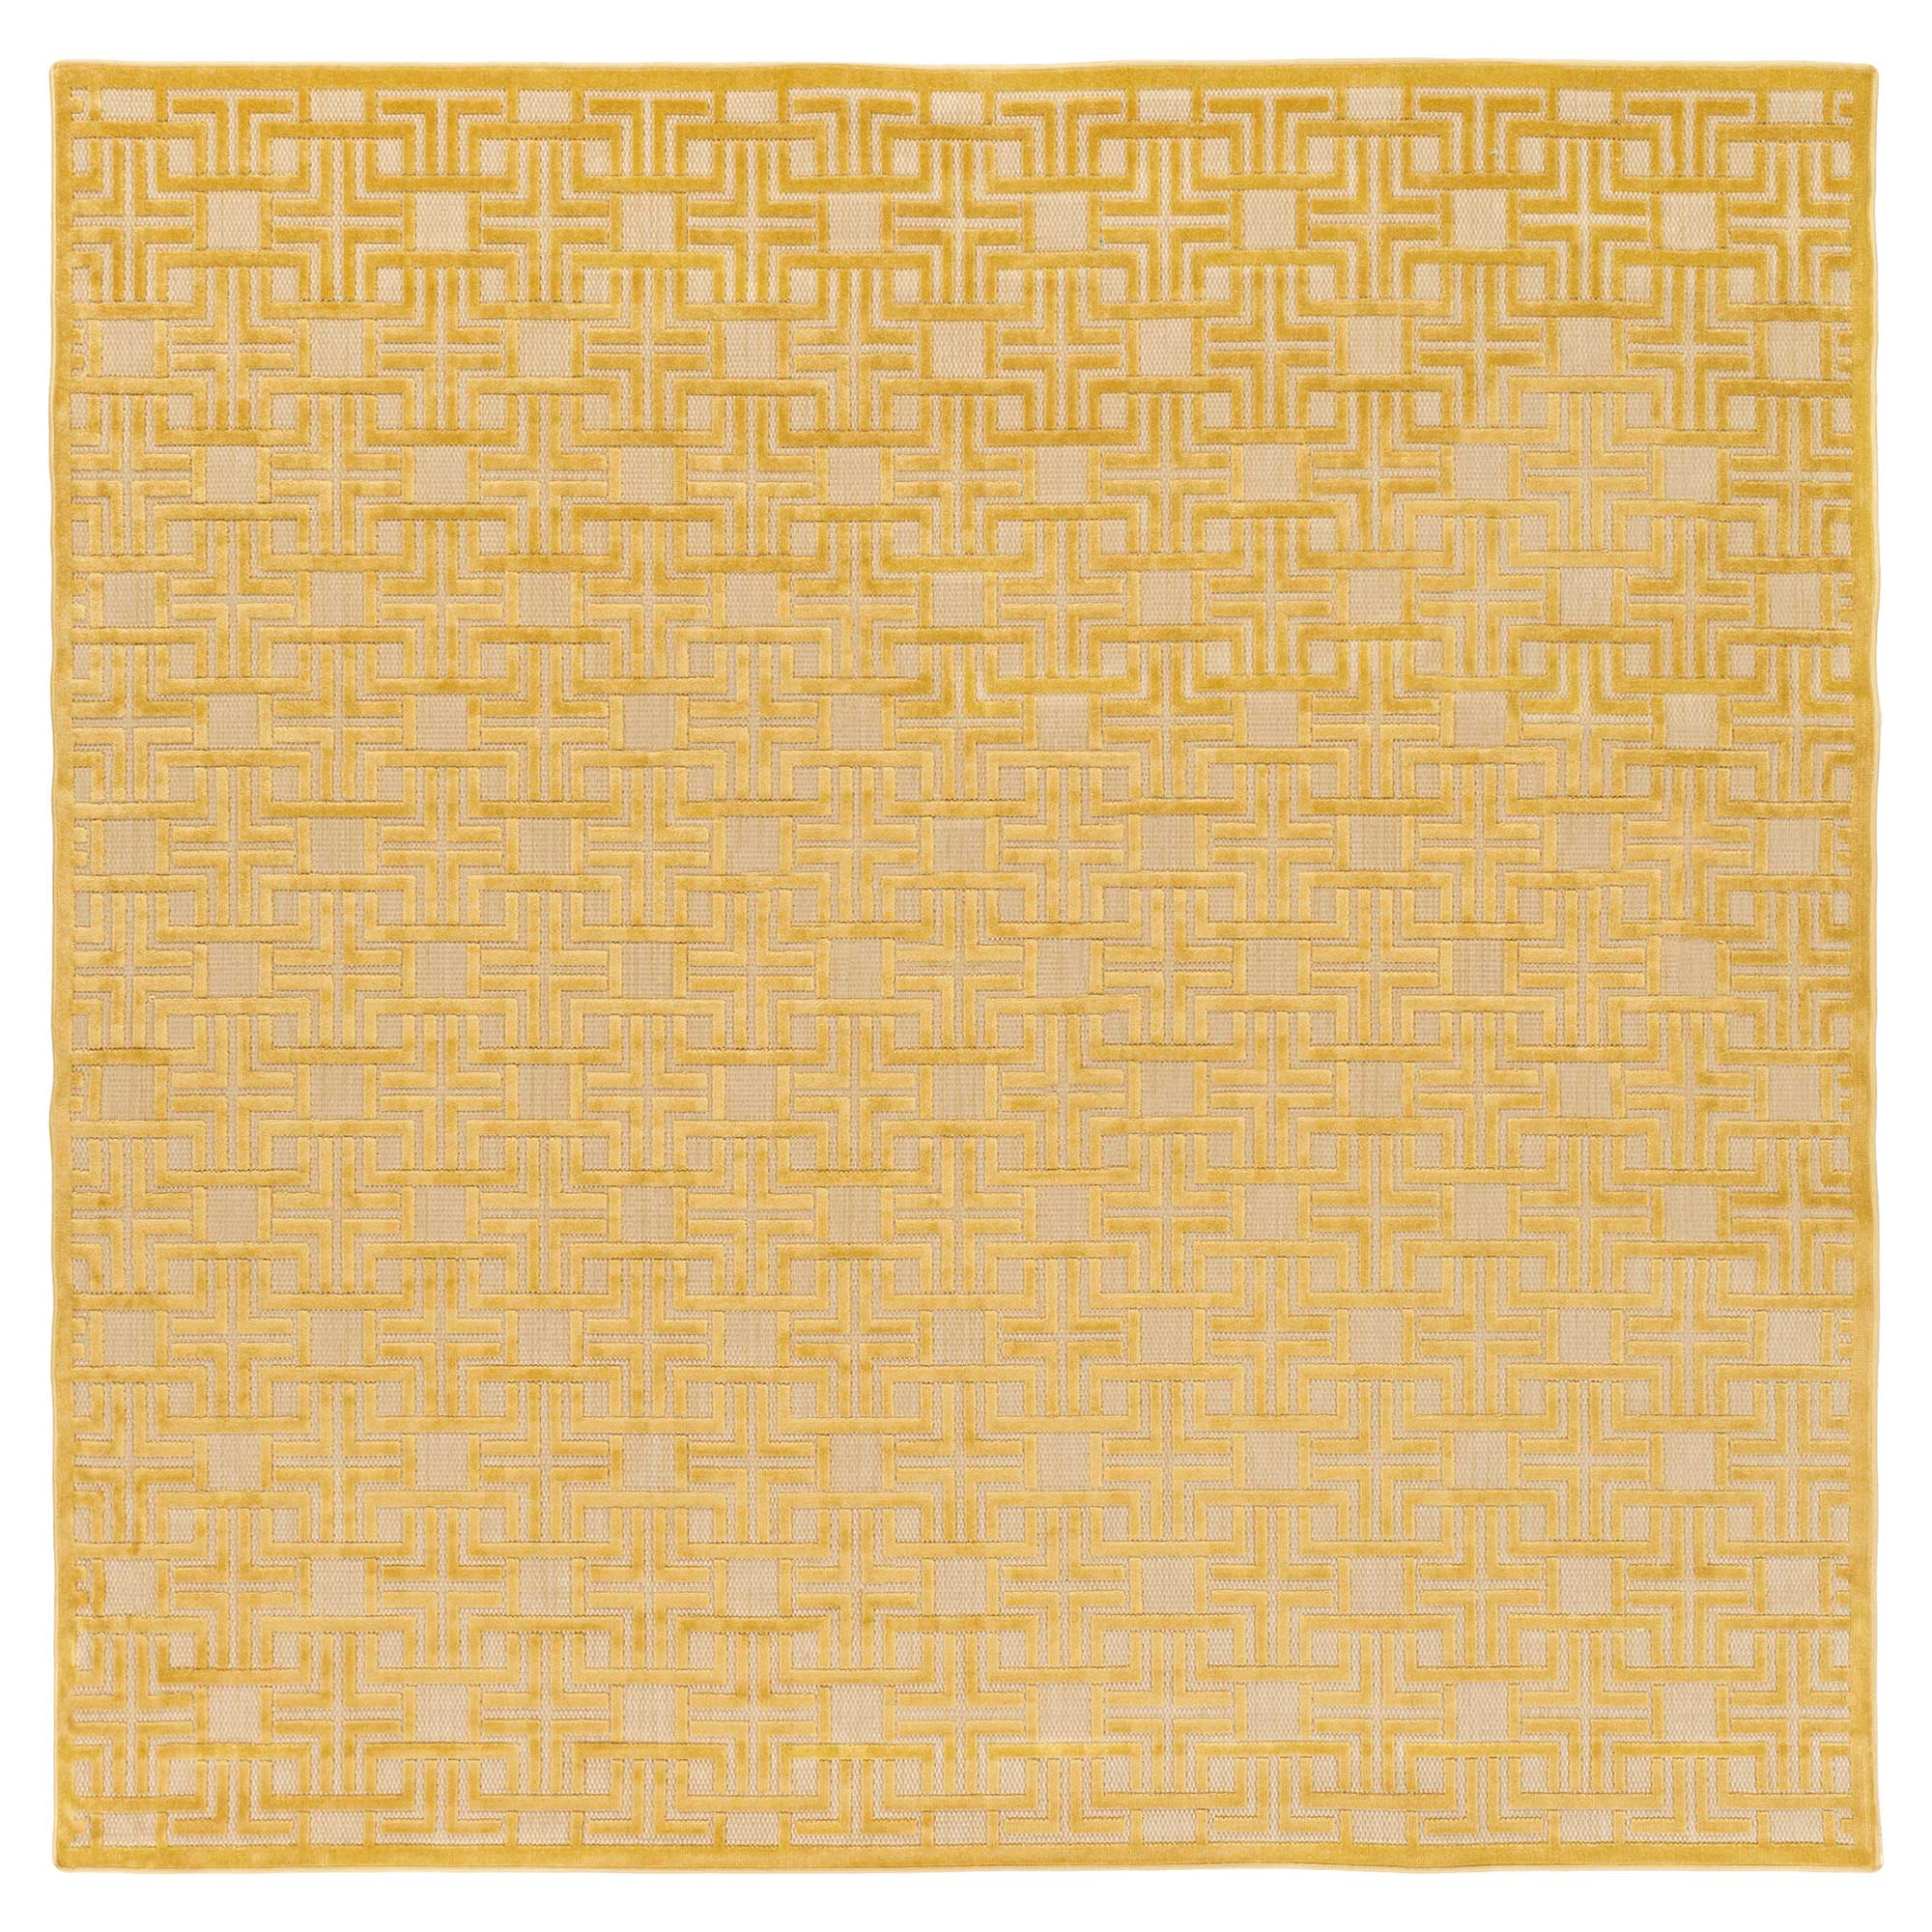 Freya Modern Golden Yellow Fretwork Outdoor Rug - Sample